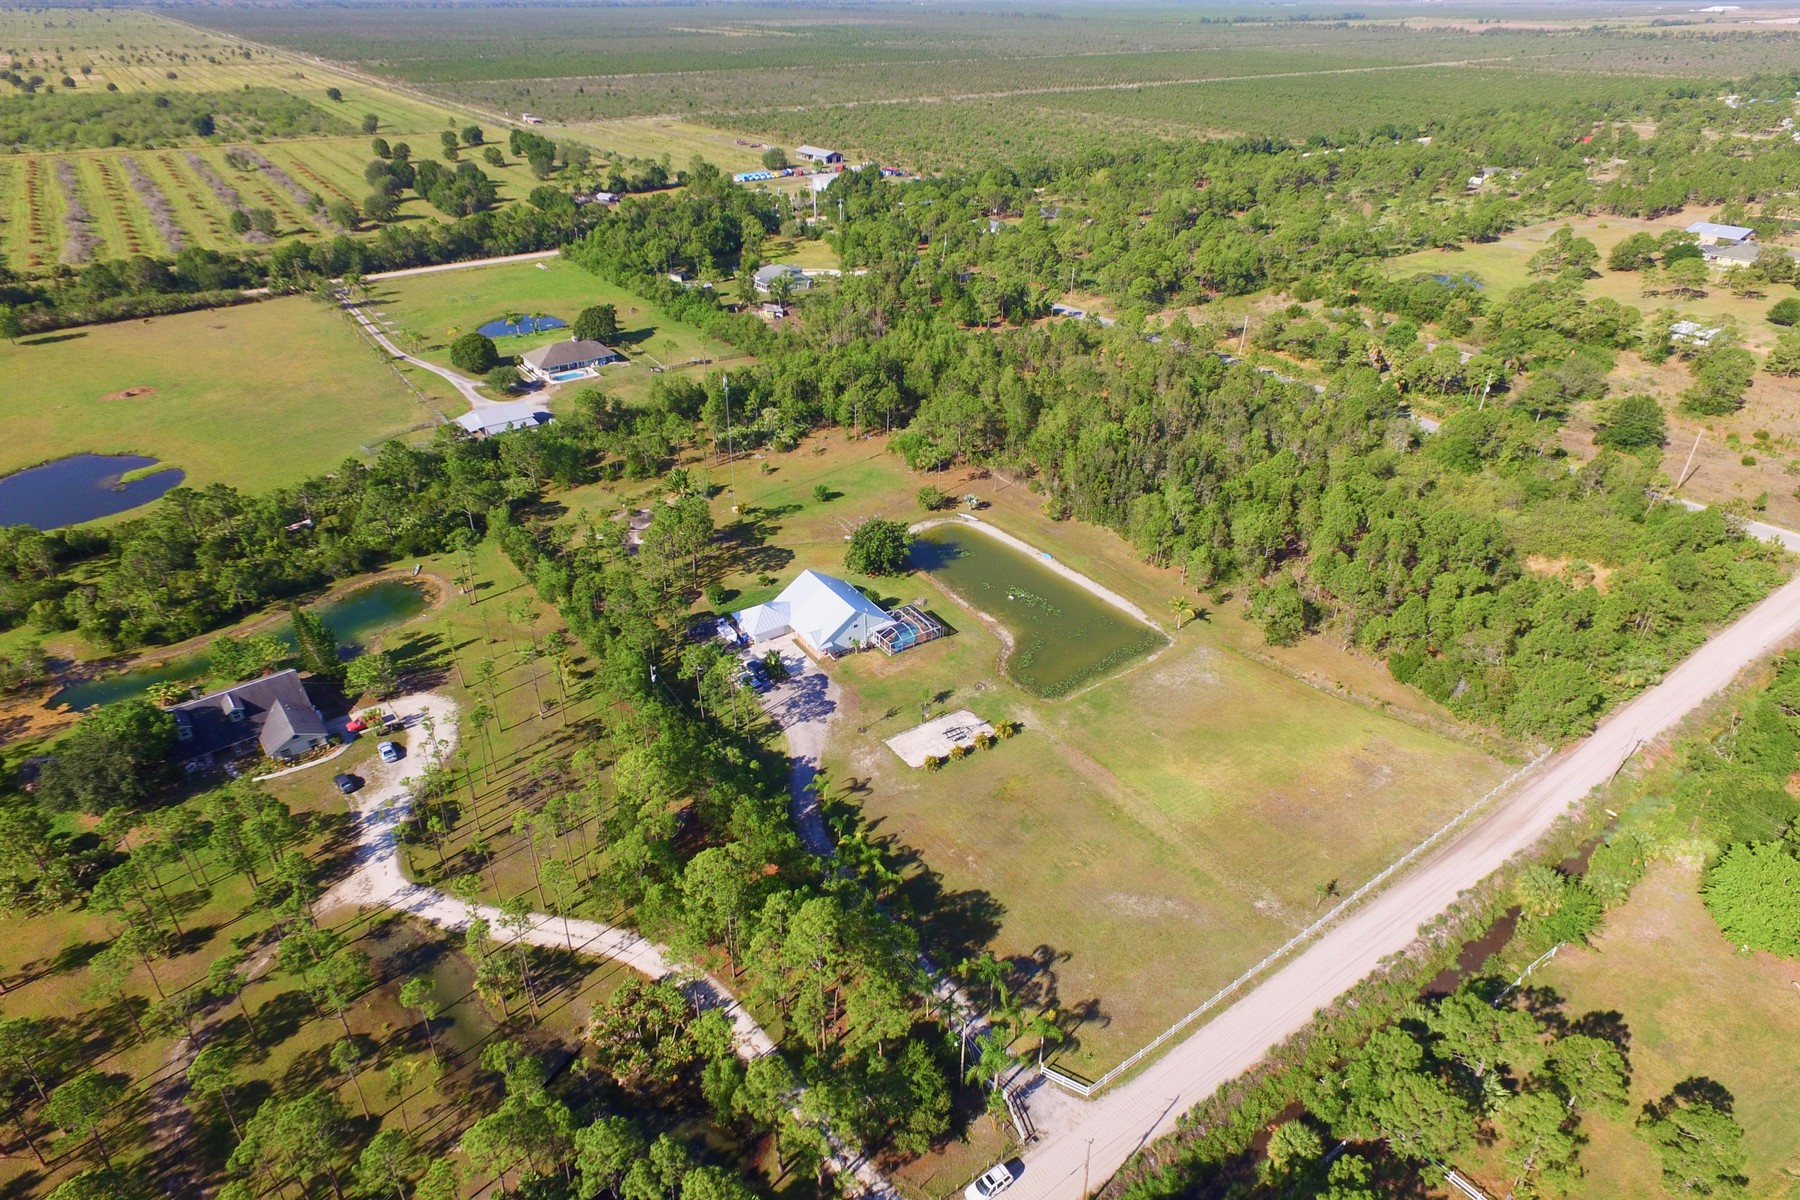 Single Family Home for Sale at 5 Acre- Waterfront Home 12925 79th Street Fellsmere, Florida 32948 United States